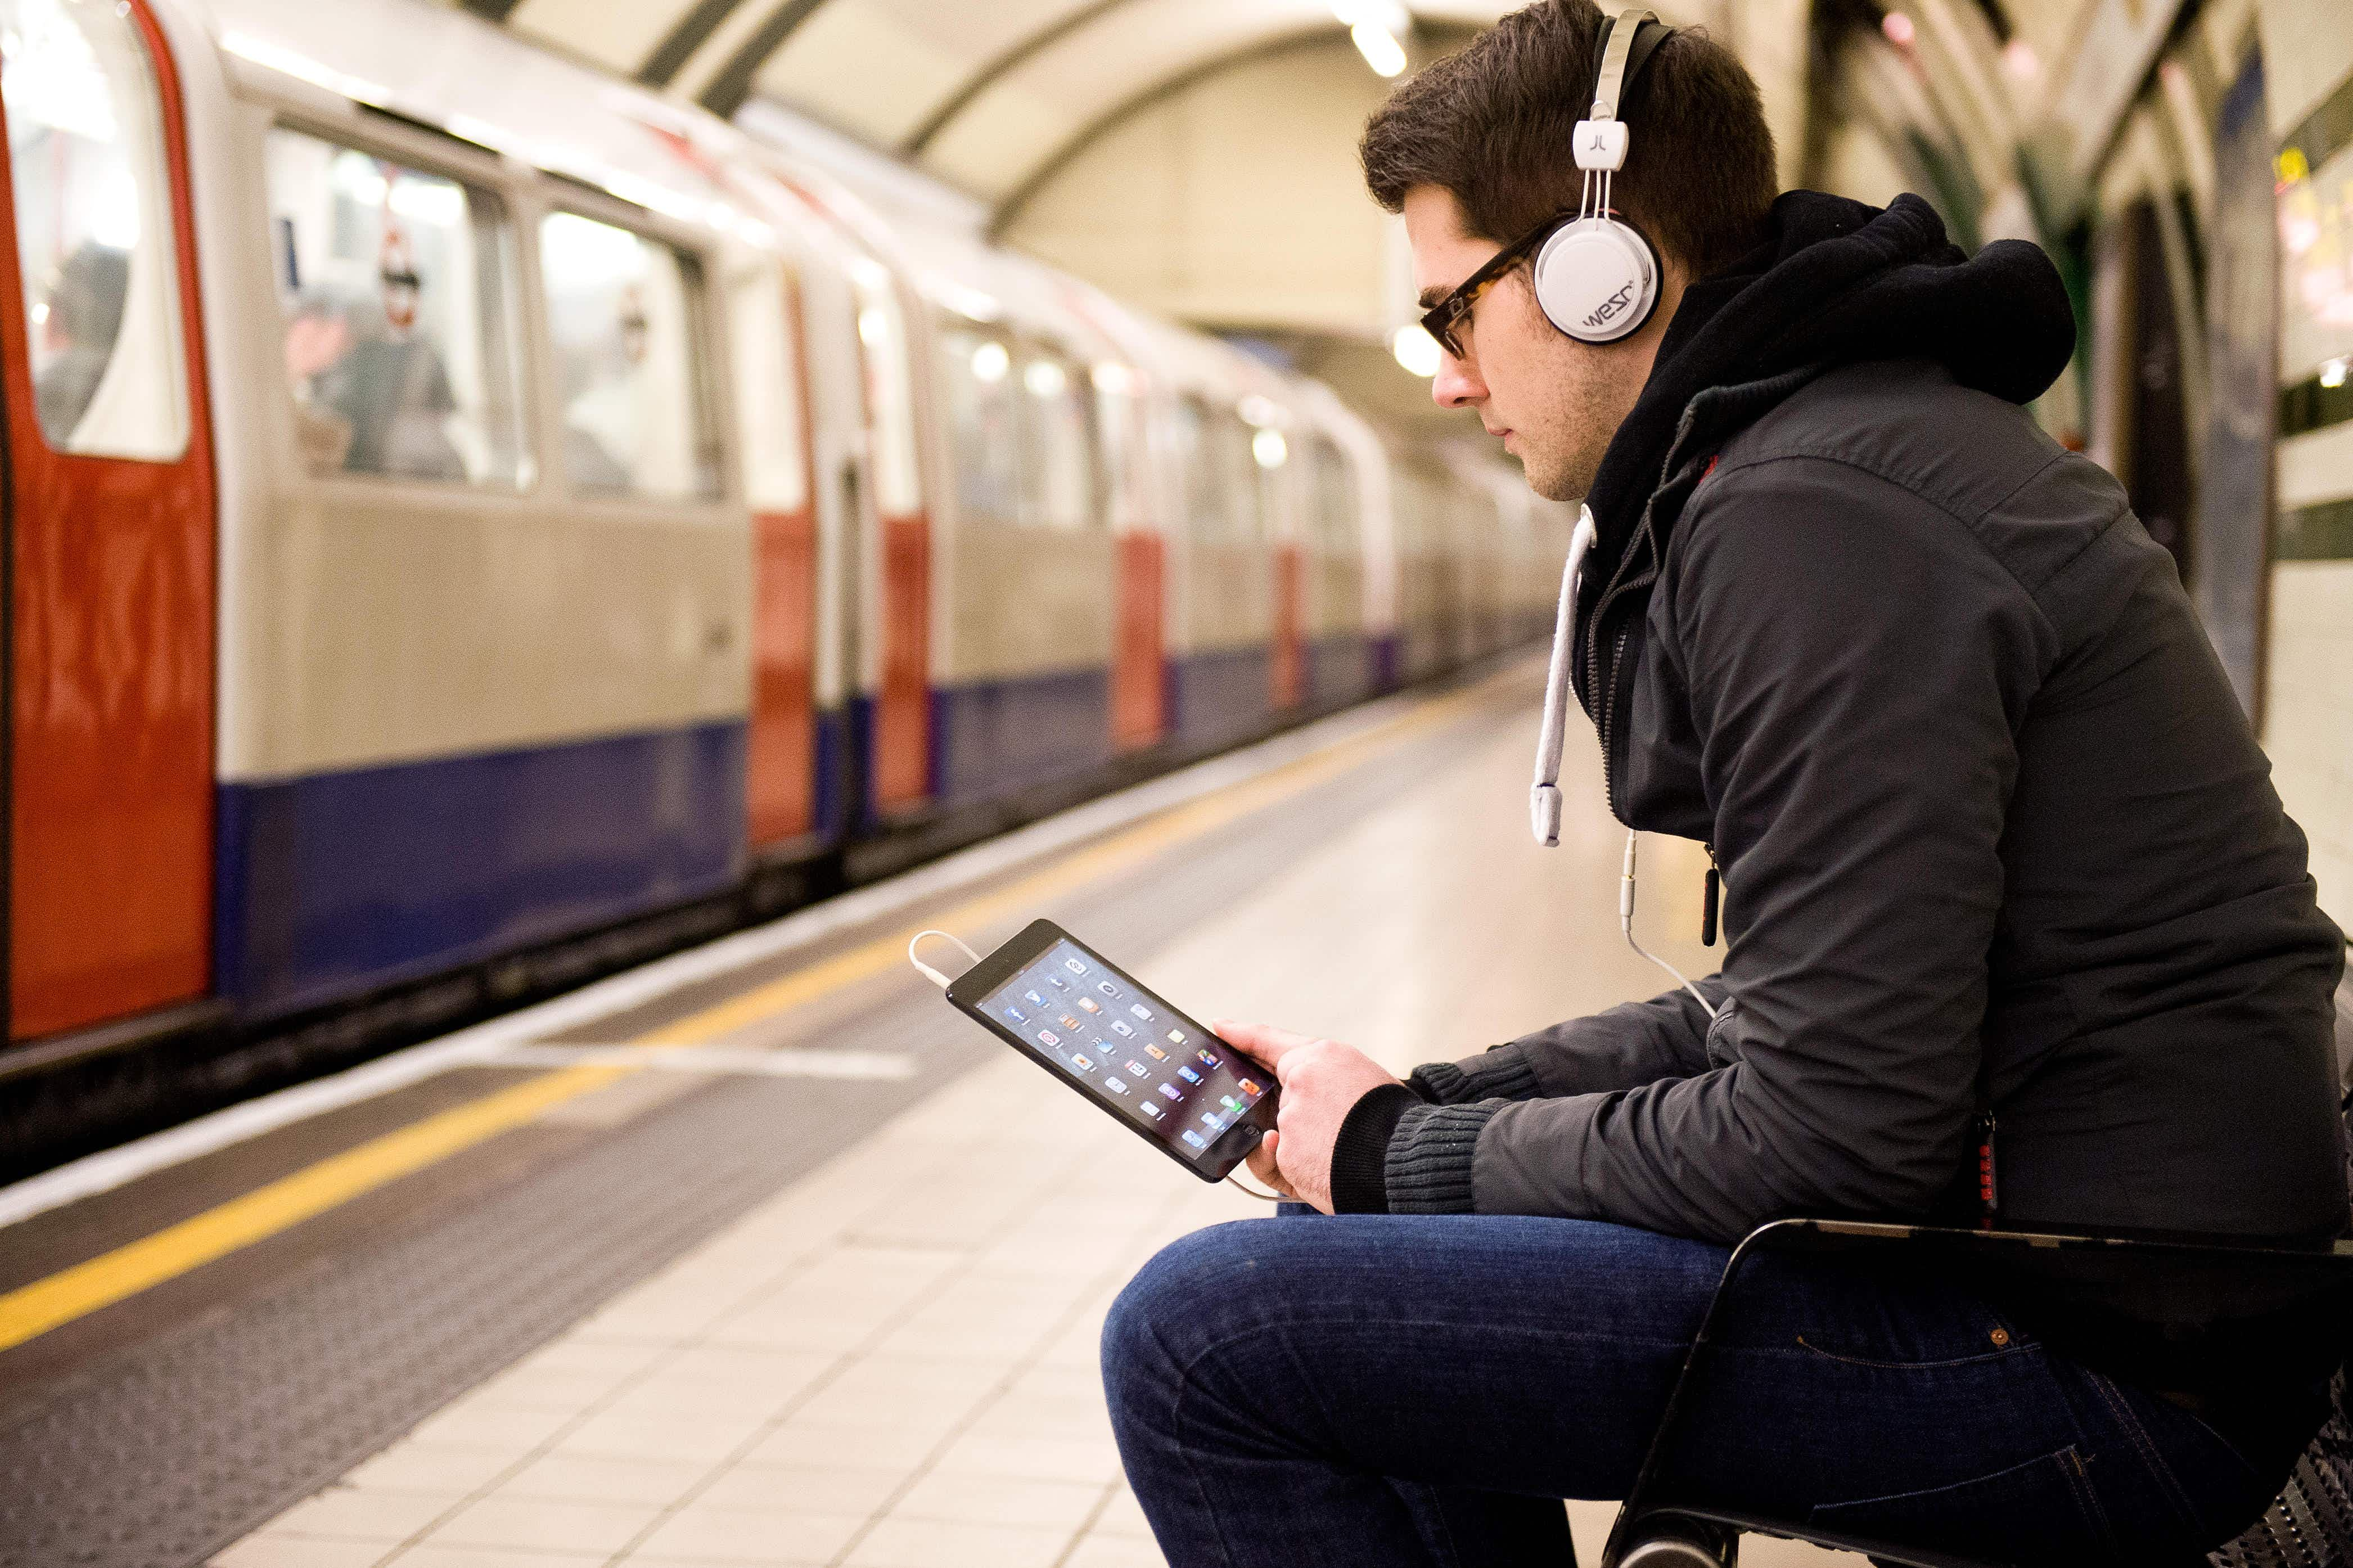 London Underground is getting 4G mobile coverage as the city embraces its digital future